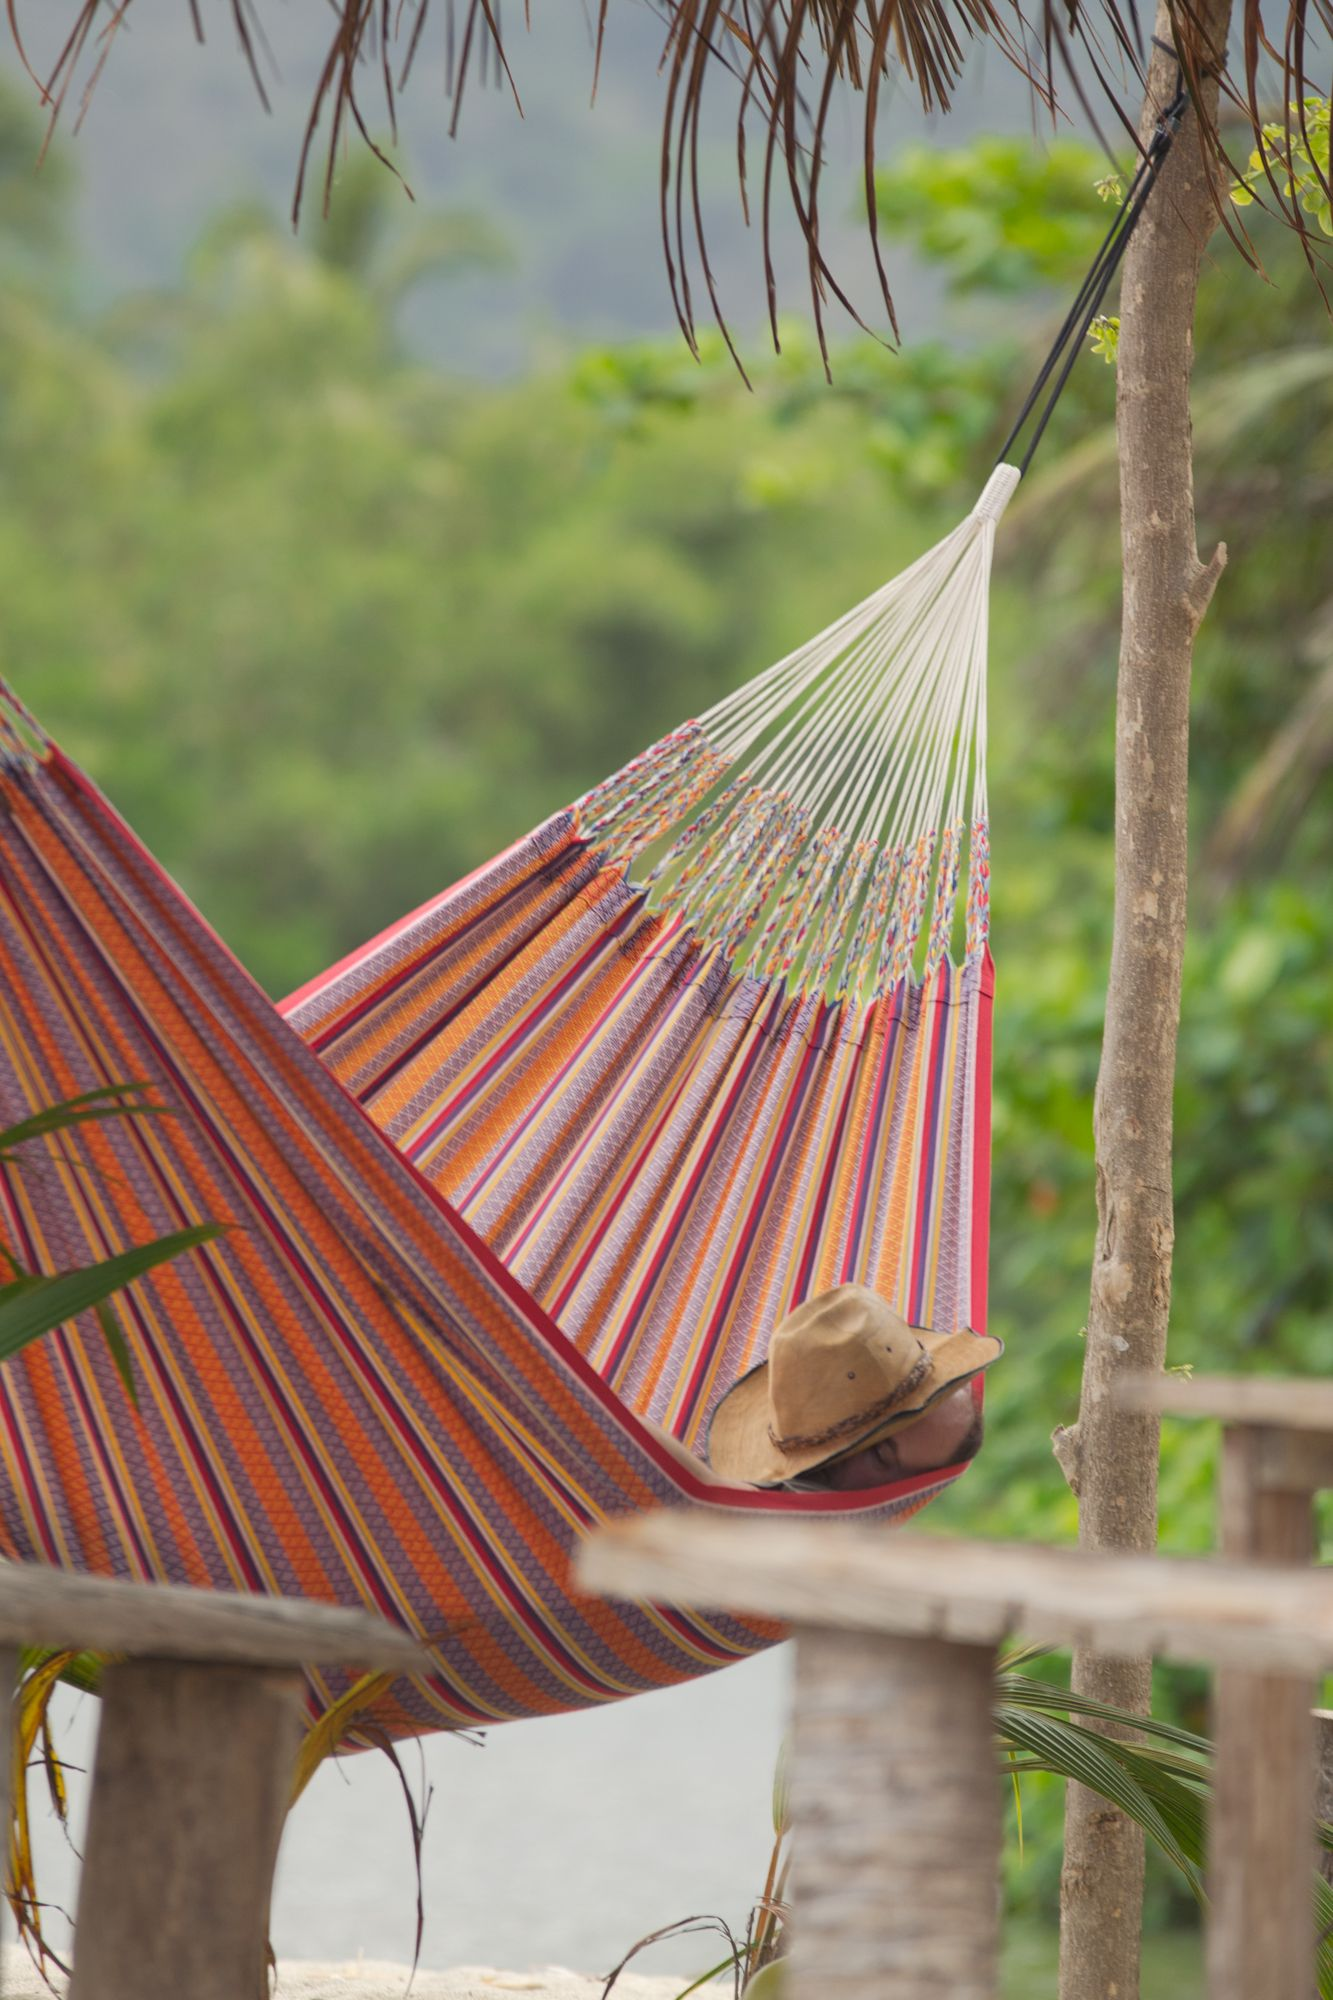 day cura organic are our this looking hammocks flora relax cotton siesta la ao for hammock shop help family colombian something to pin mother s mum